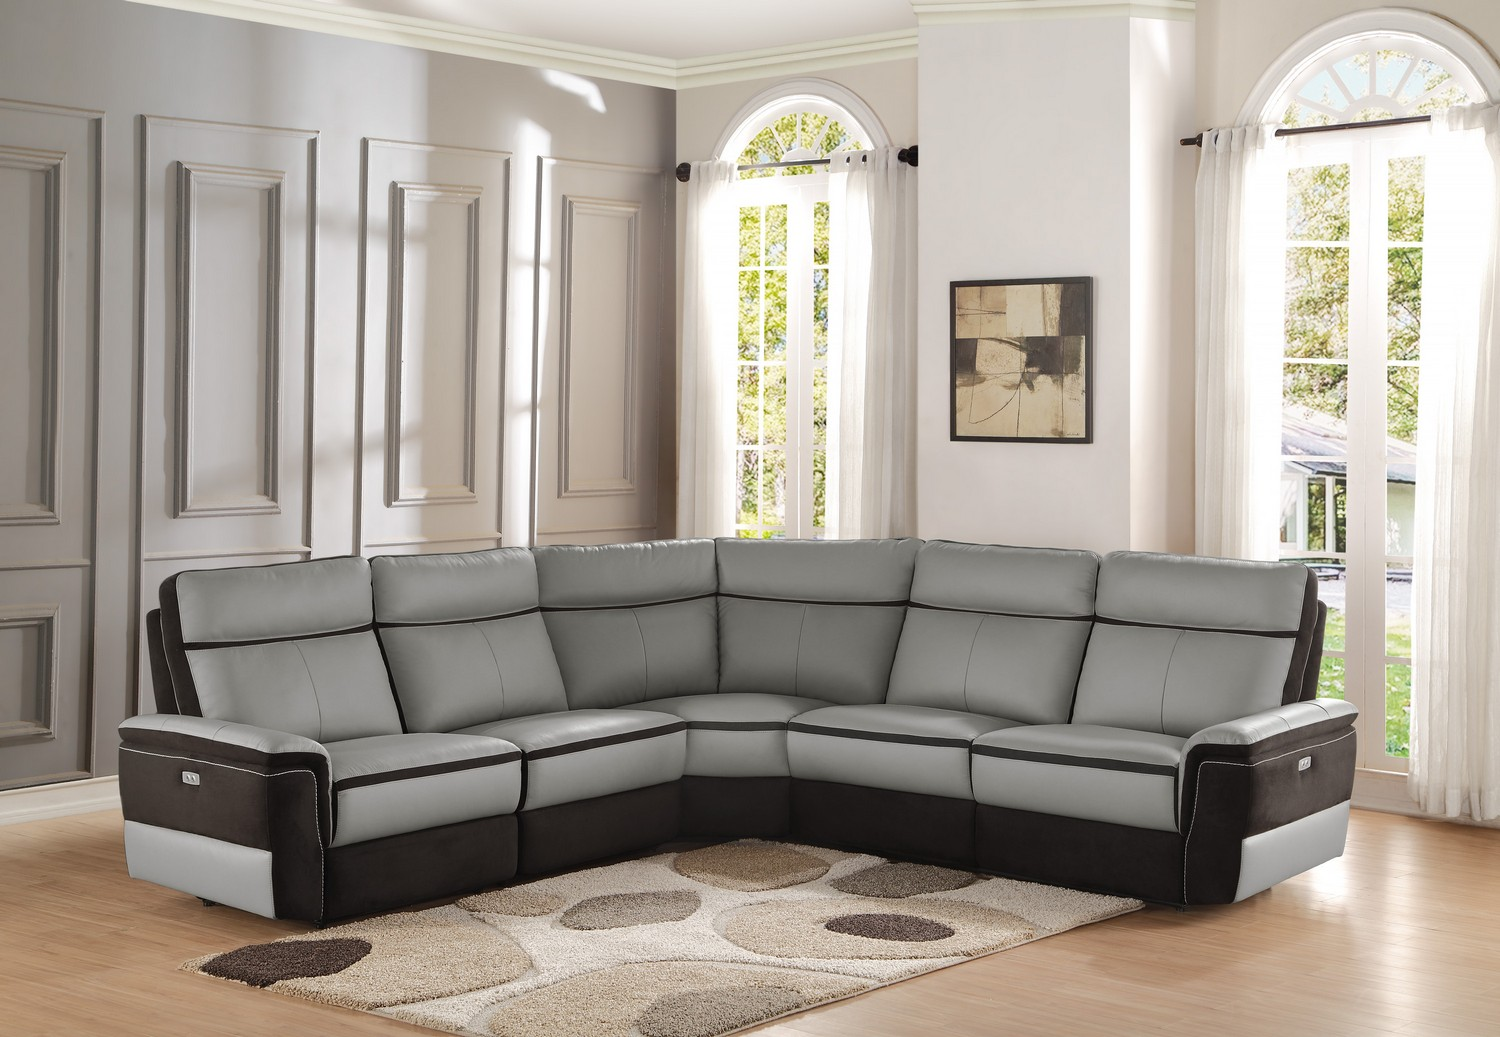 Homelegance Furniture Laertes Power Reclining Sectional Sofa Set Top Grain LeatherFabric Taupe Grey 8318 POWER SECTIONAL SET p